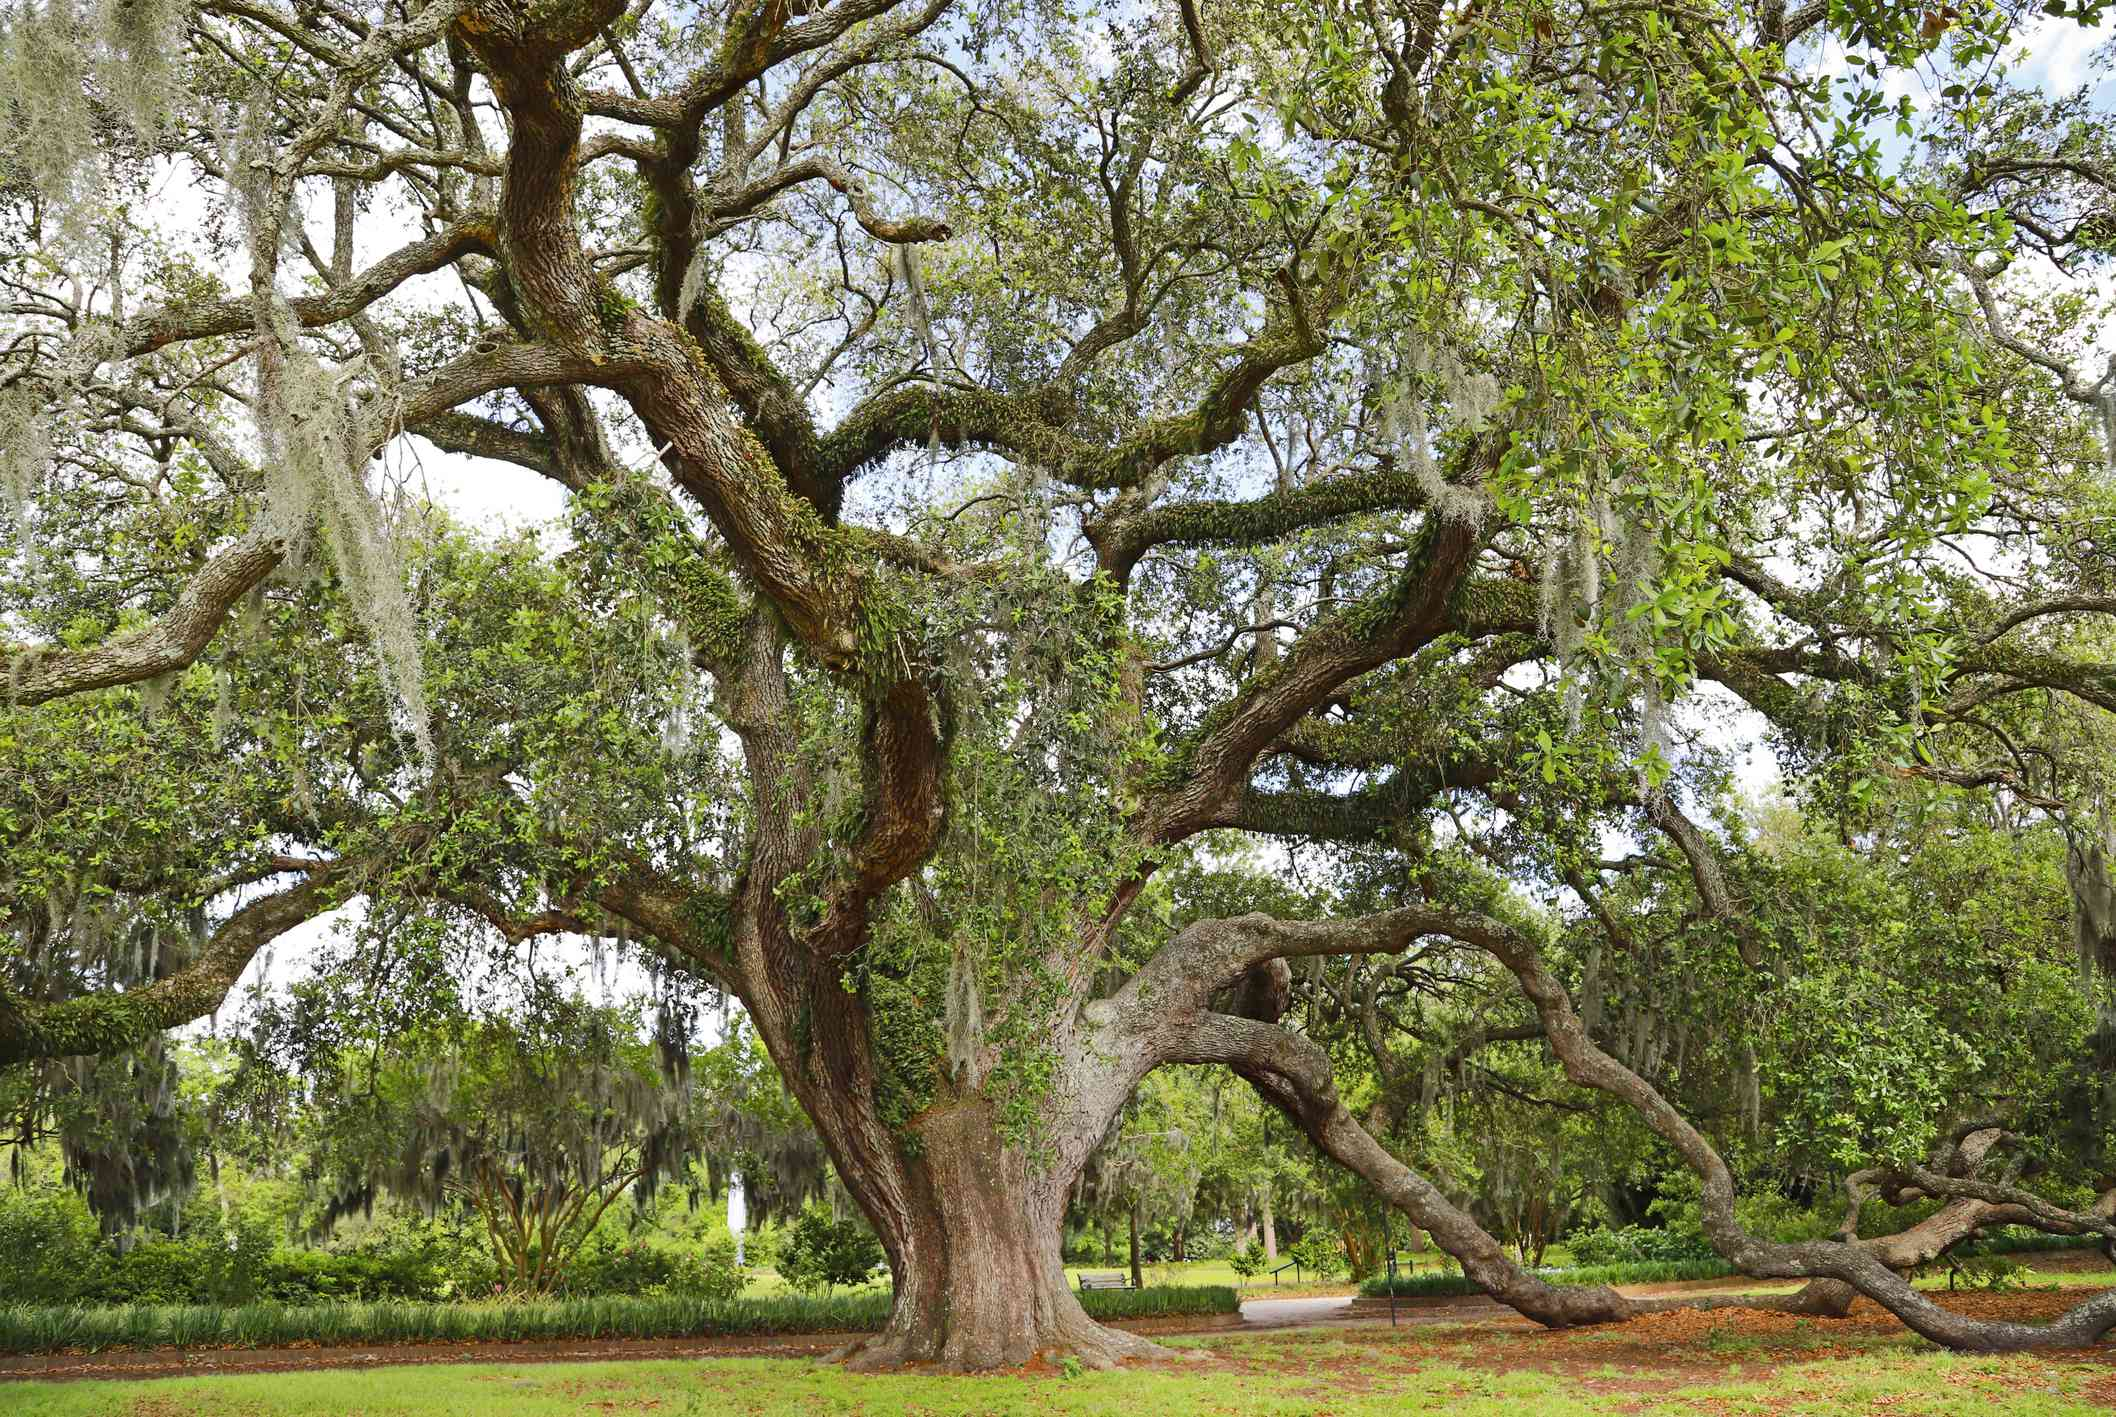 A large Live Oak tree in a park.